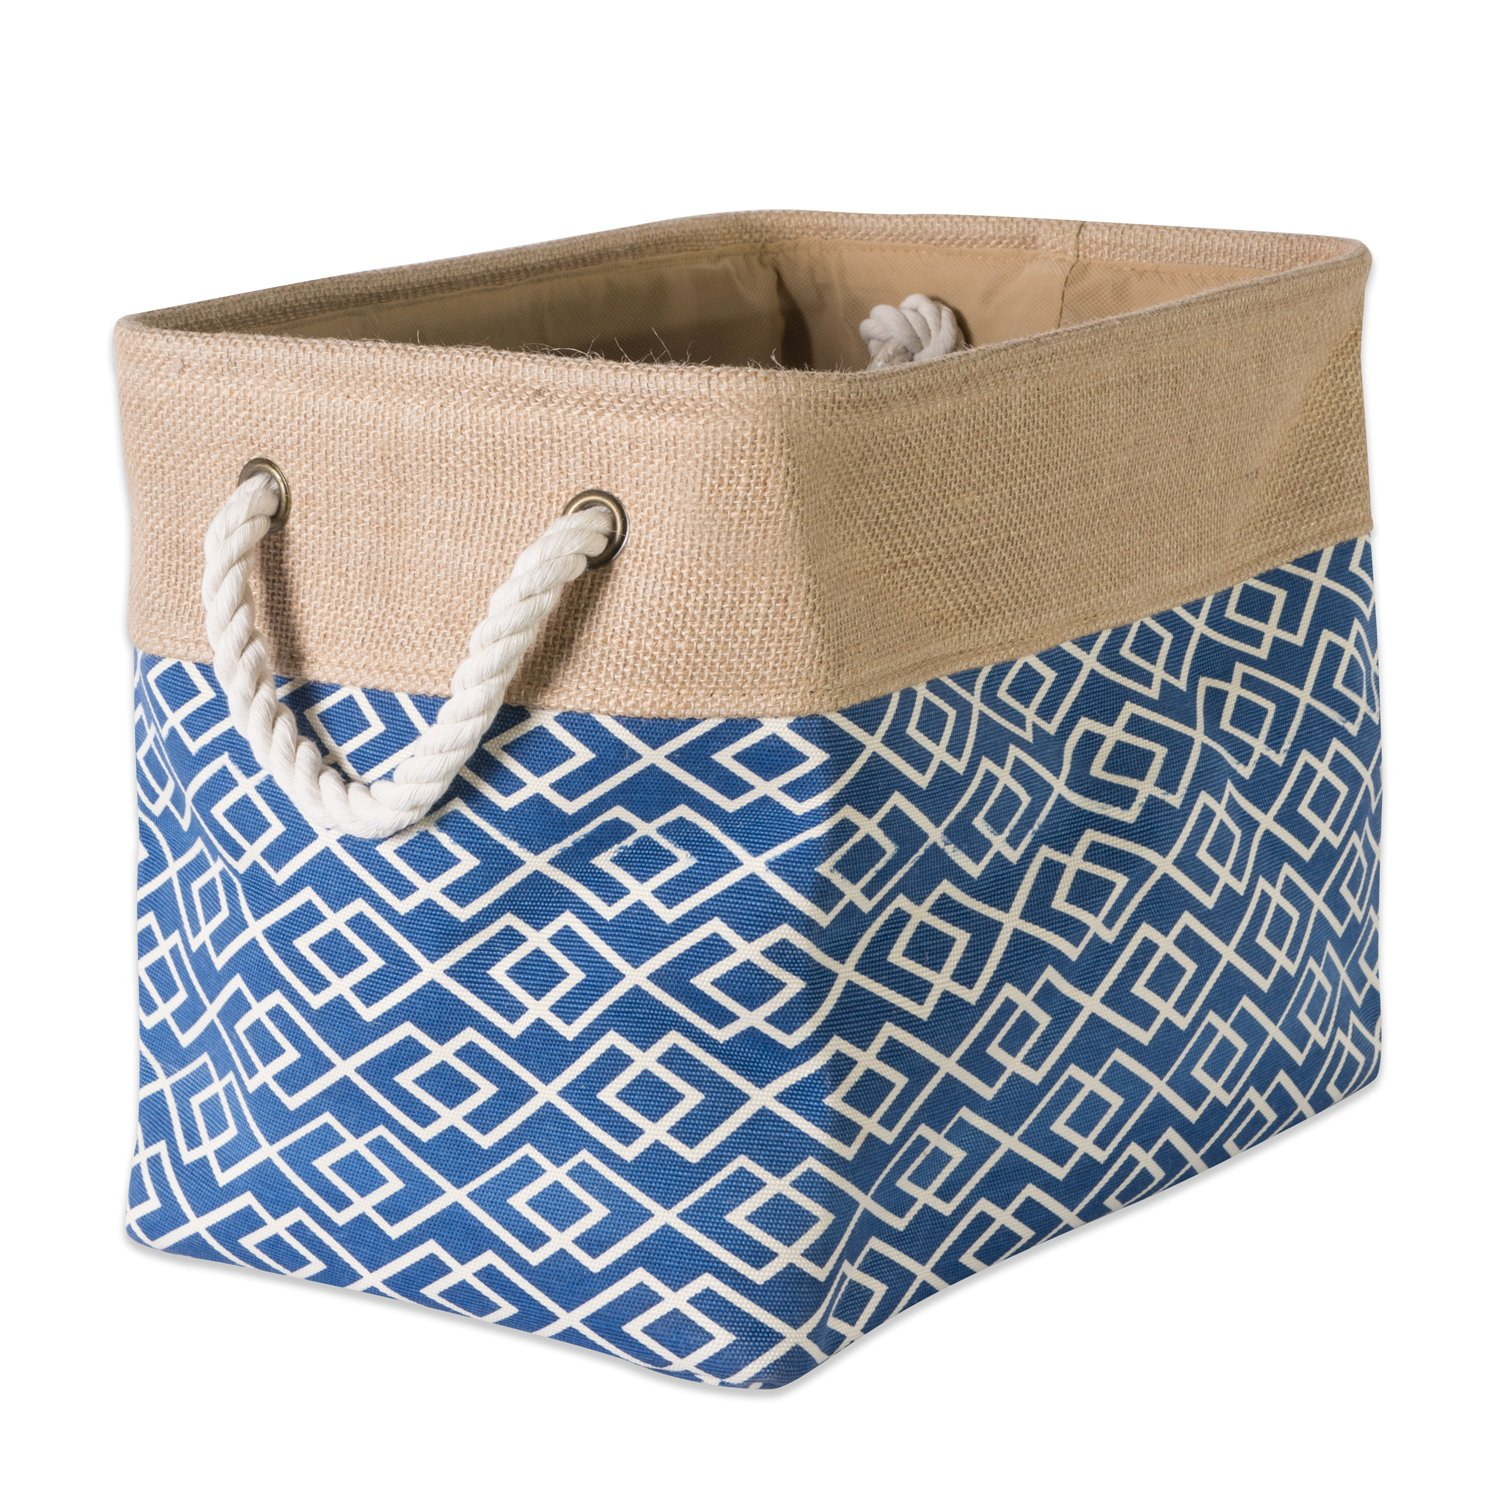 "DII Collapsible Burlap Storage Basket or Bin with Durable Cotton Handles, Home Organizational Solution for Office, Bedroom, Closet, Toys, & Laundry (Large – 18x12x15""), Diamond Navy"